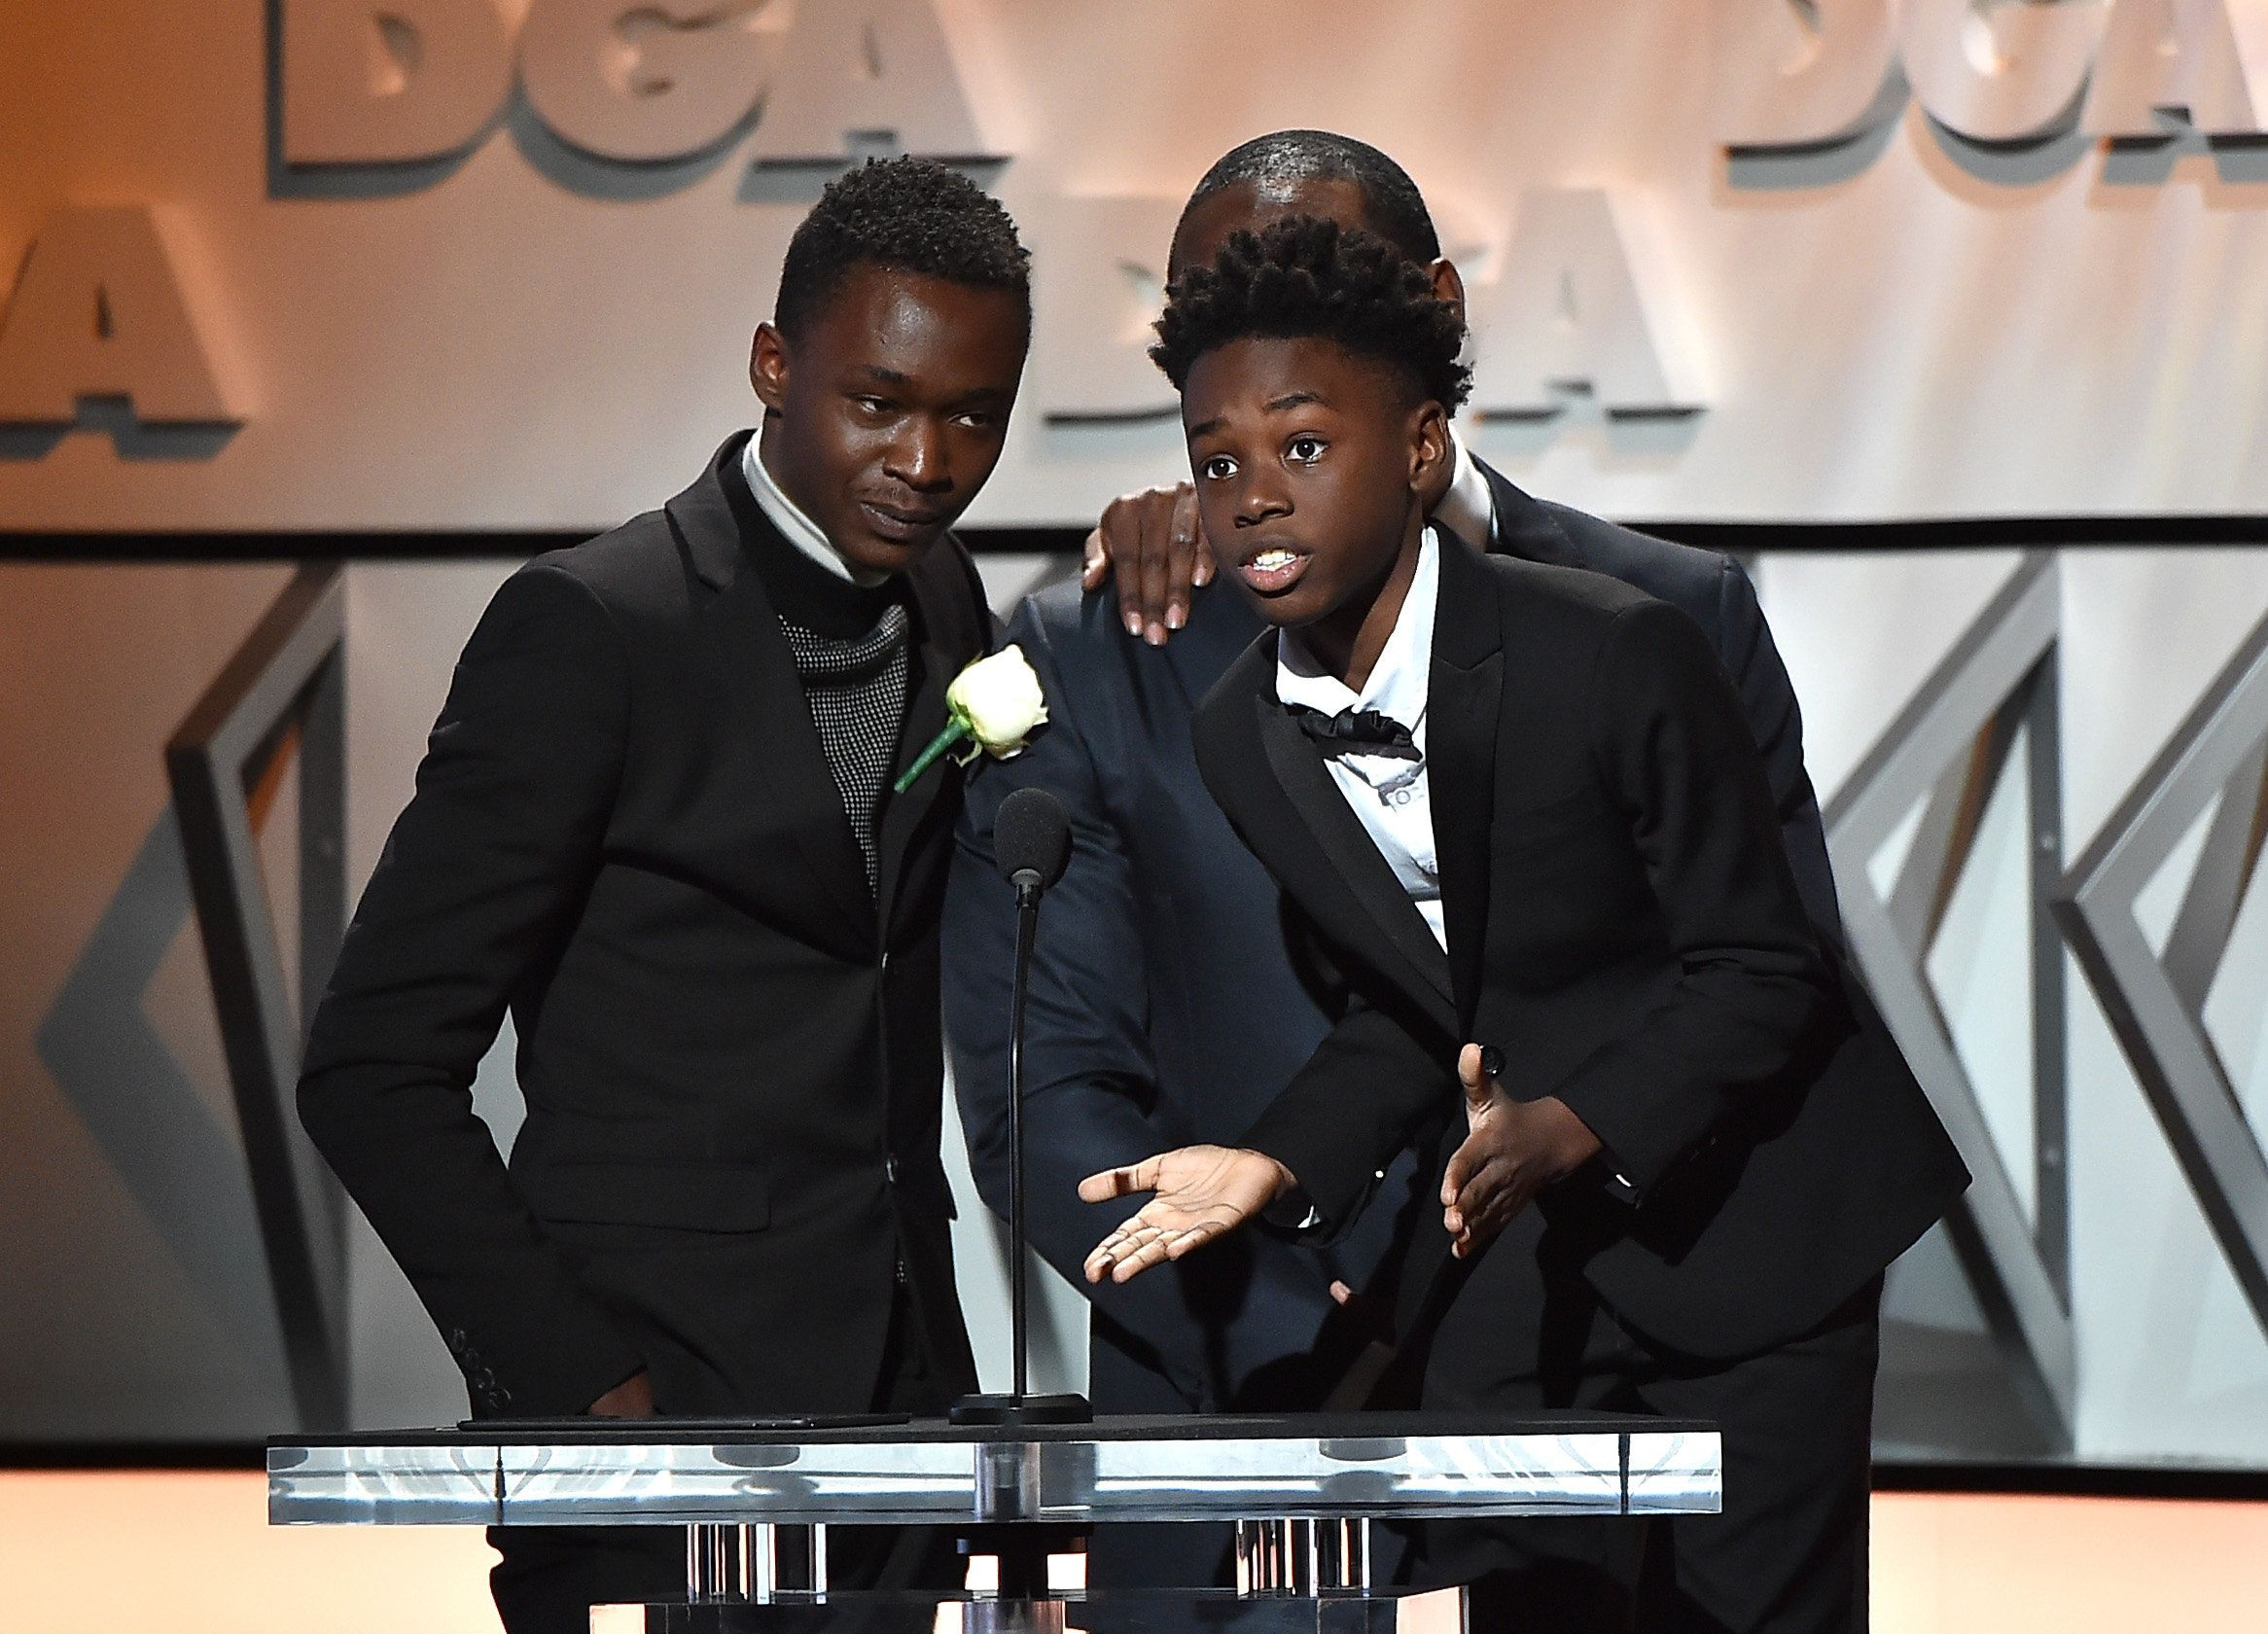 BEVERLY HILLS, CA - FEBRUARY 04:  (L-R) Actors Trevante Rhodes, Ashton Sanders and Alex R. Hibbert onstage during the 69th Annual Directors Guild of America Awards at The Beverly Hilton Hotel on February 4, 2017 in Beverly Hills, California.  (Photo by Alberto E. Rodriguez/Getty Images for DGA)